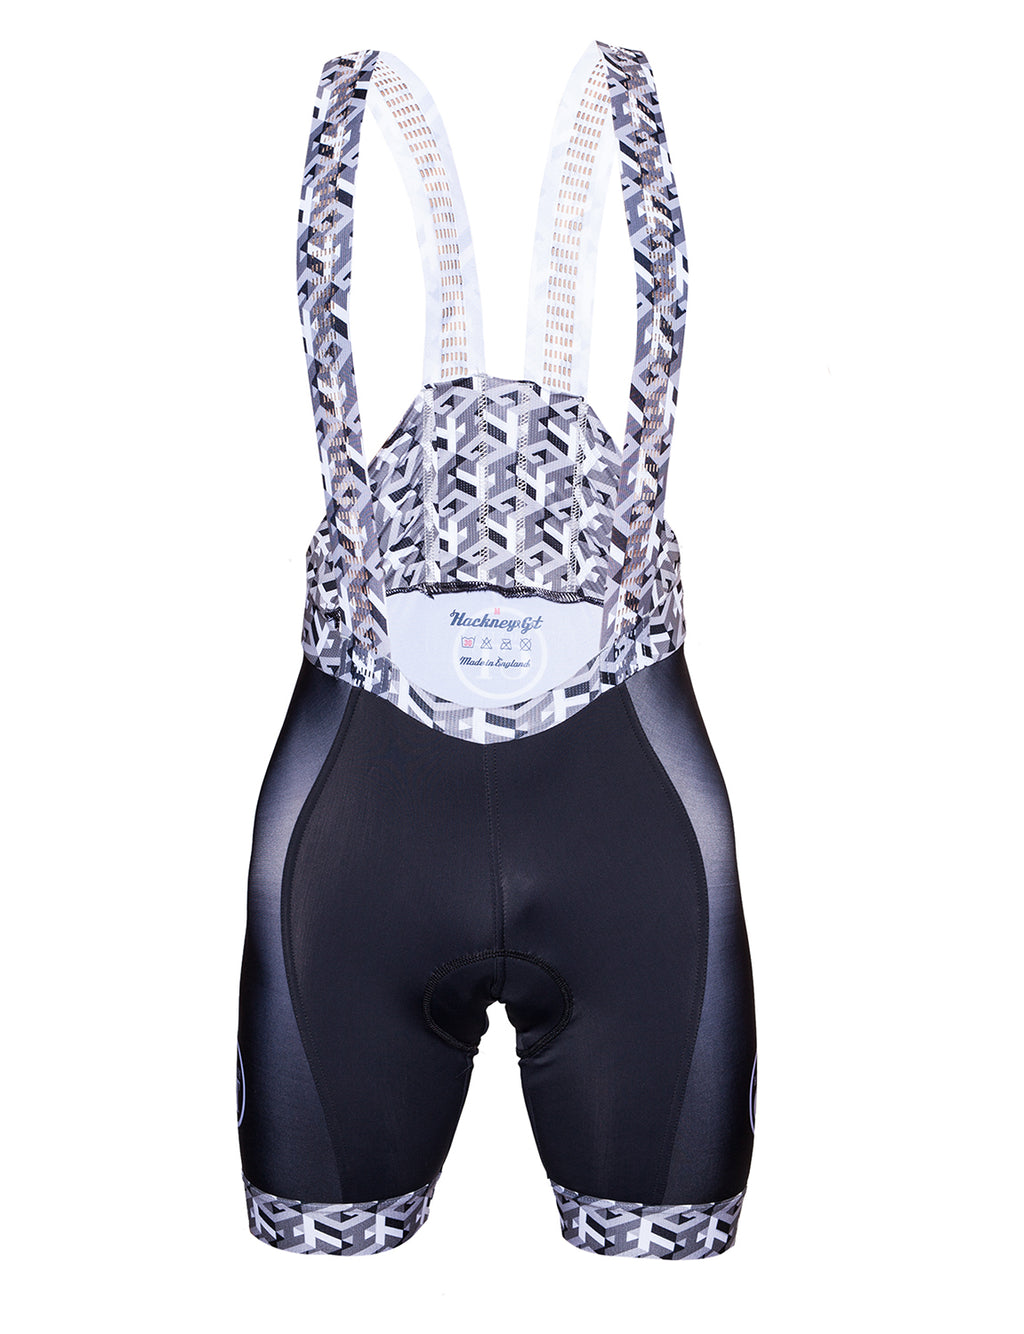 Hackney GT Robi Bib Shorts